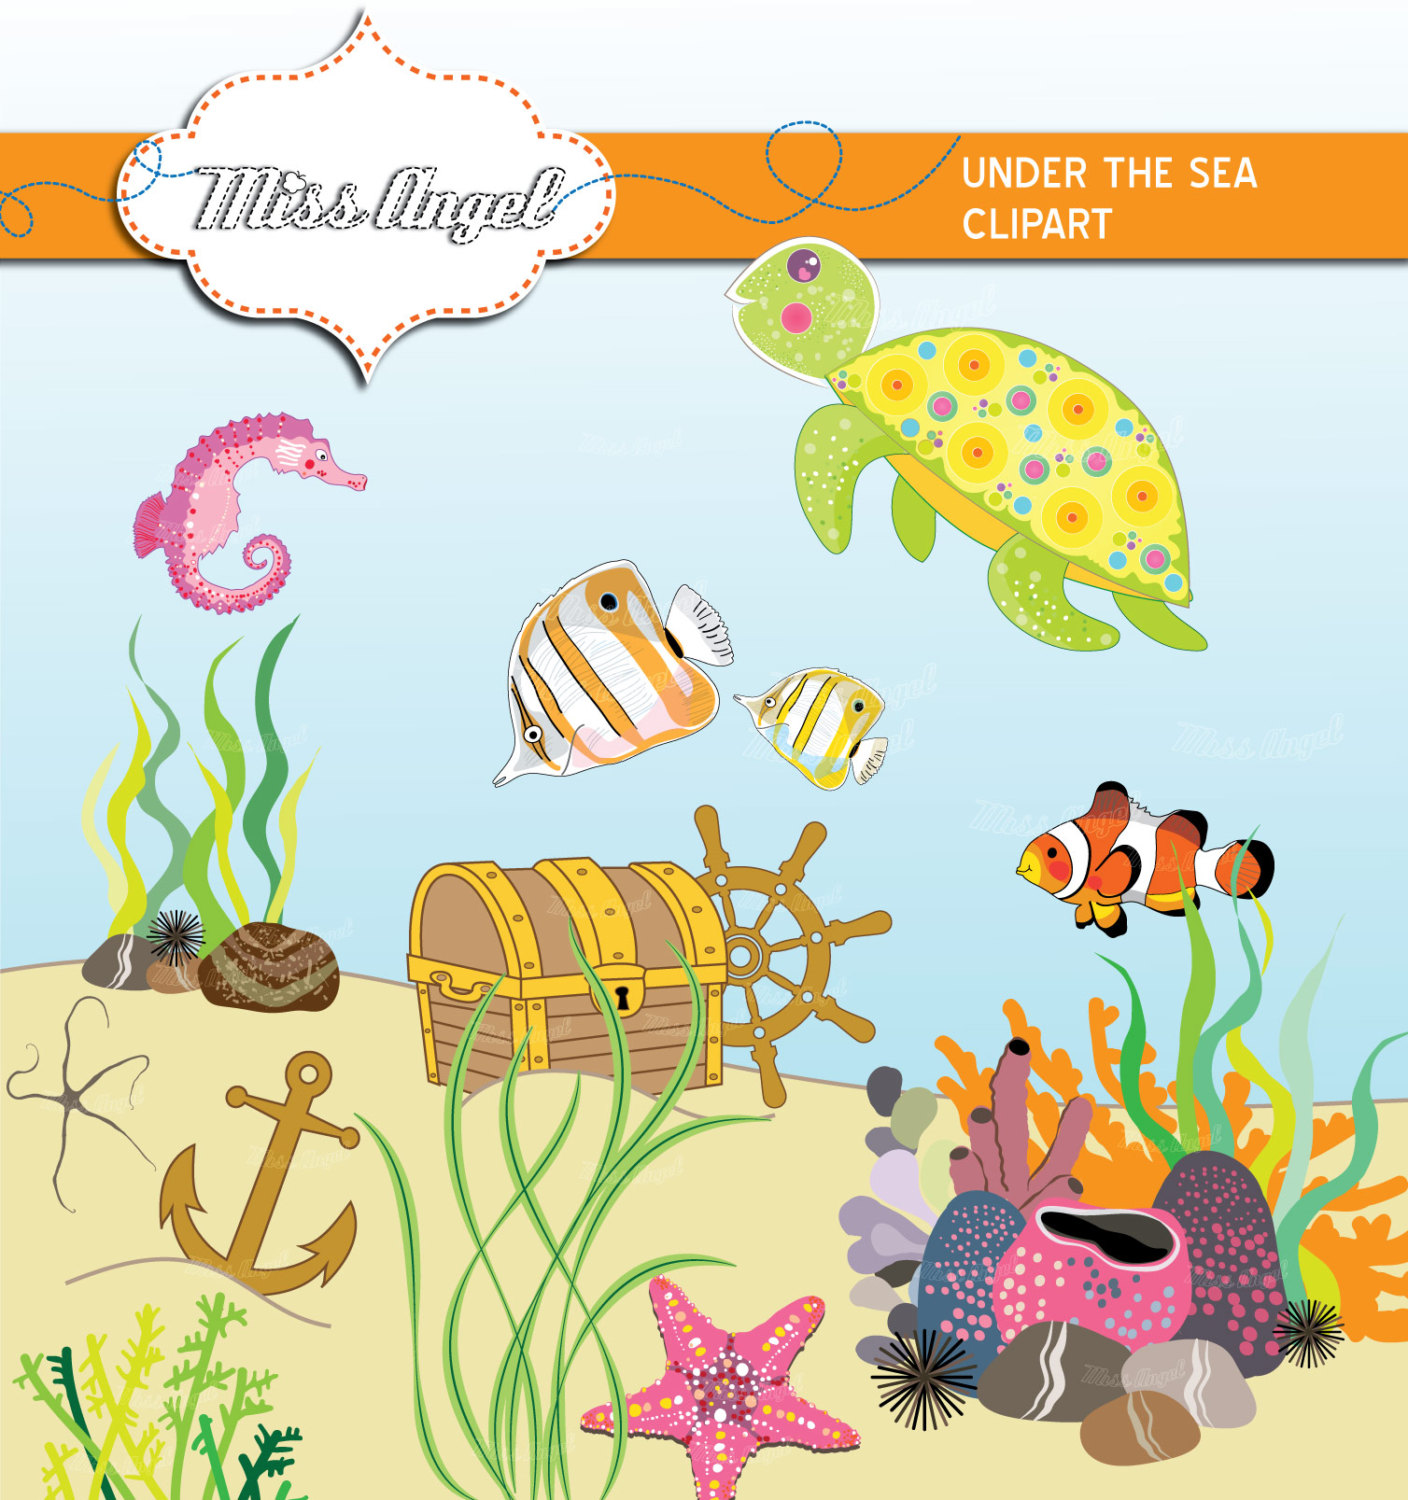 Sea world animals and corals clipart hd.